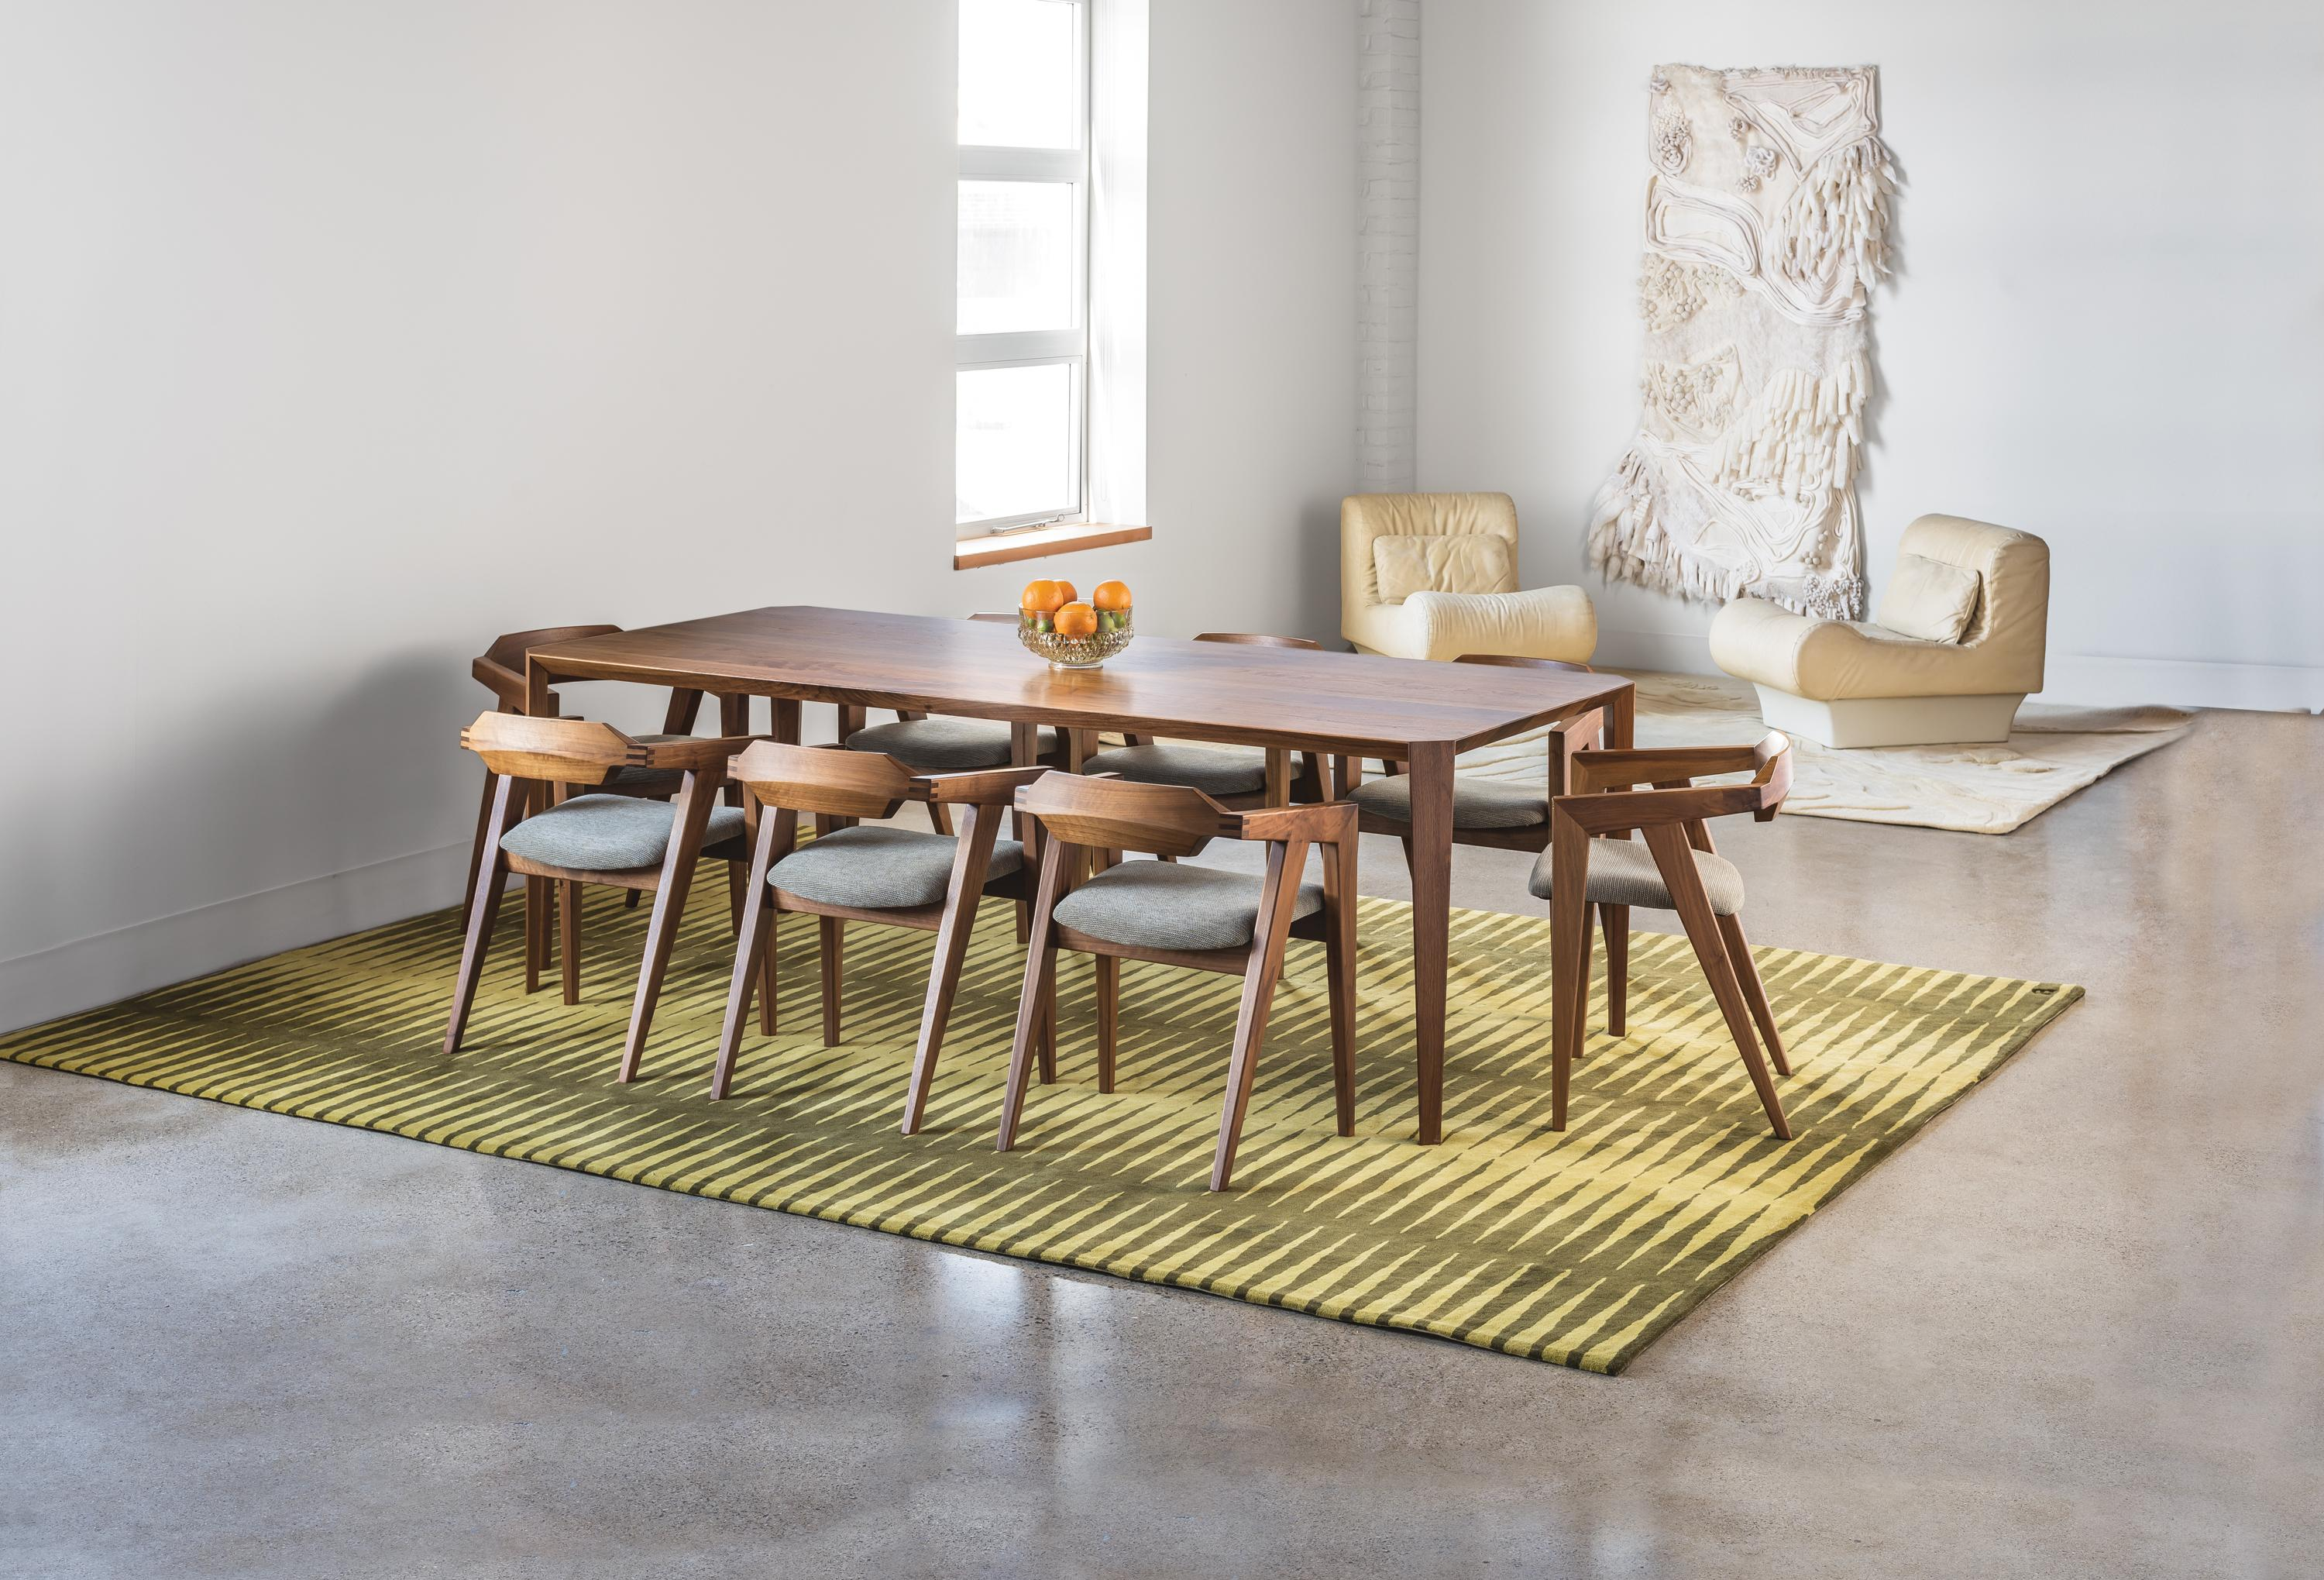 Angela Adams Origami Dining Table In Cherry Seats Six Handcrafted Modern For At 1stdibs